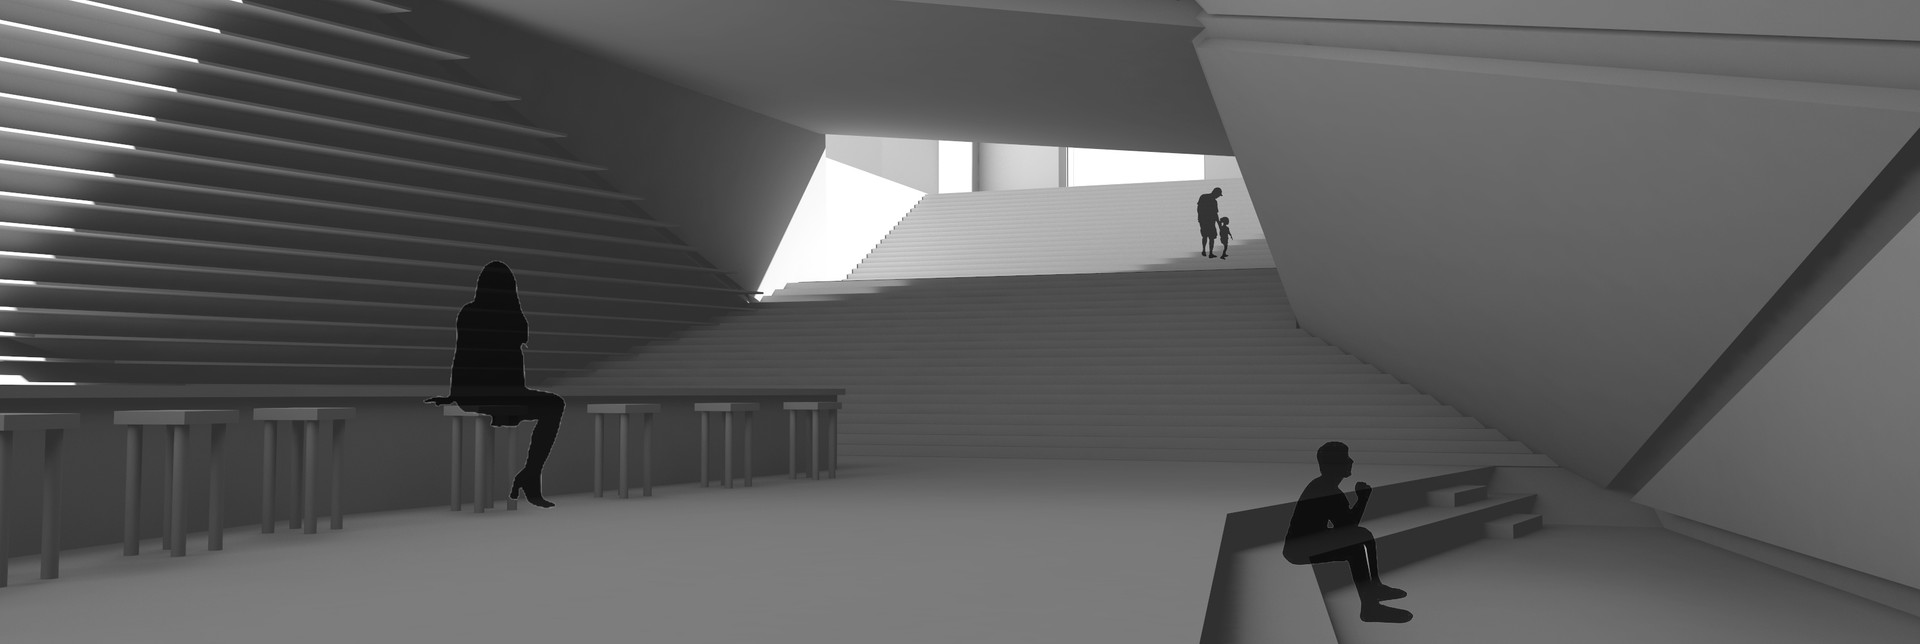 interior render of the memorial library